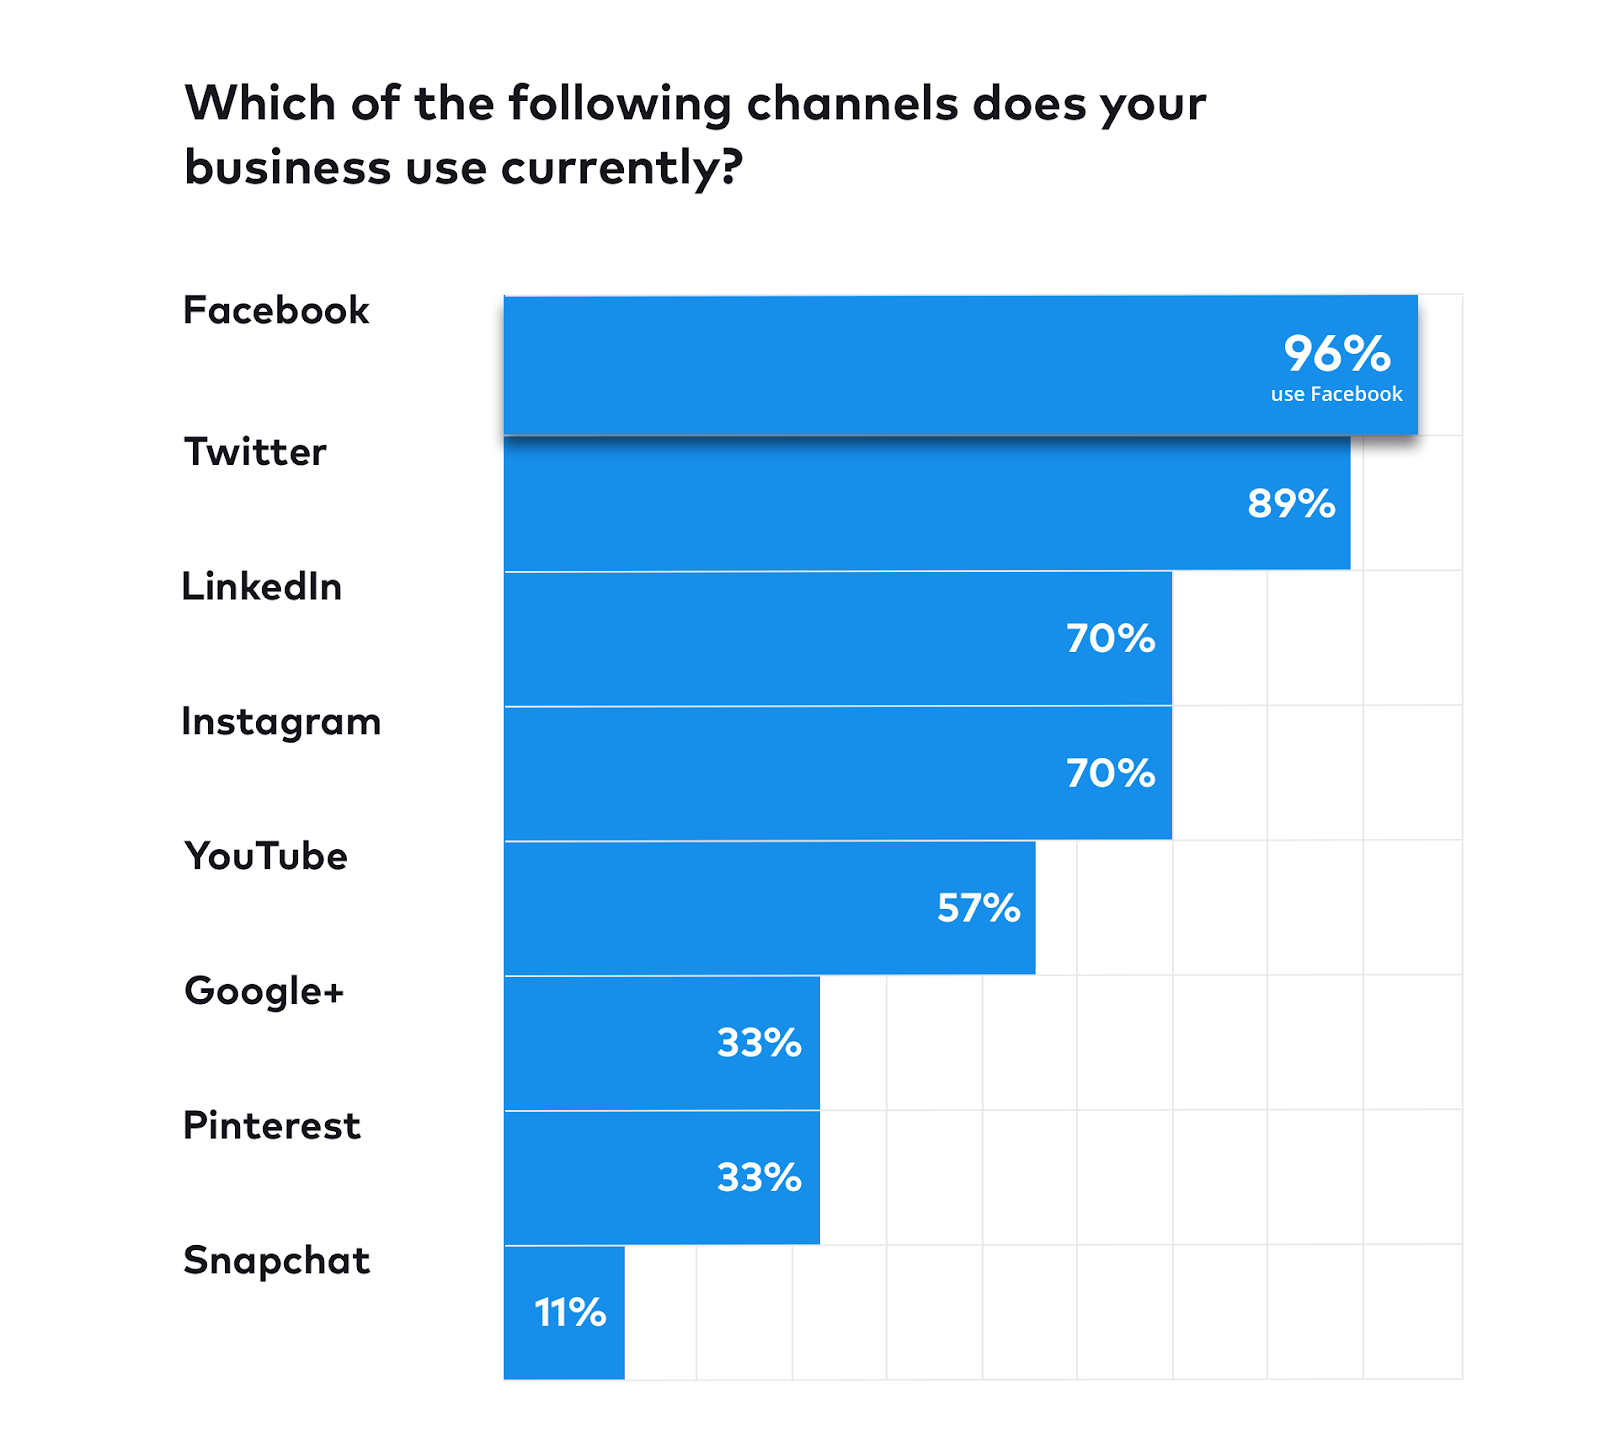 Most popular social channels used by businesses